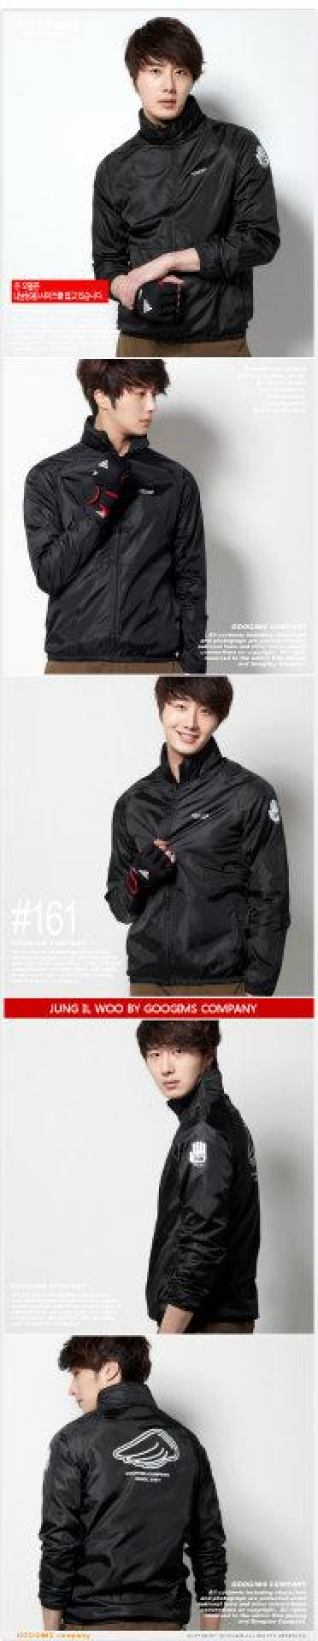 2011 10 Jung II-woo for Googims. Part 100062